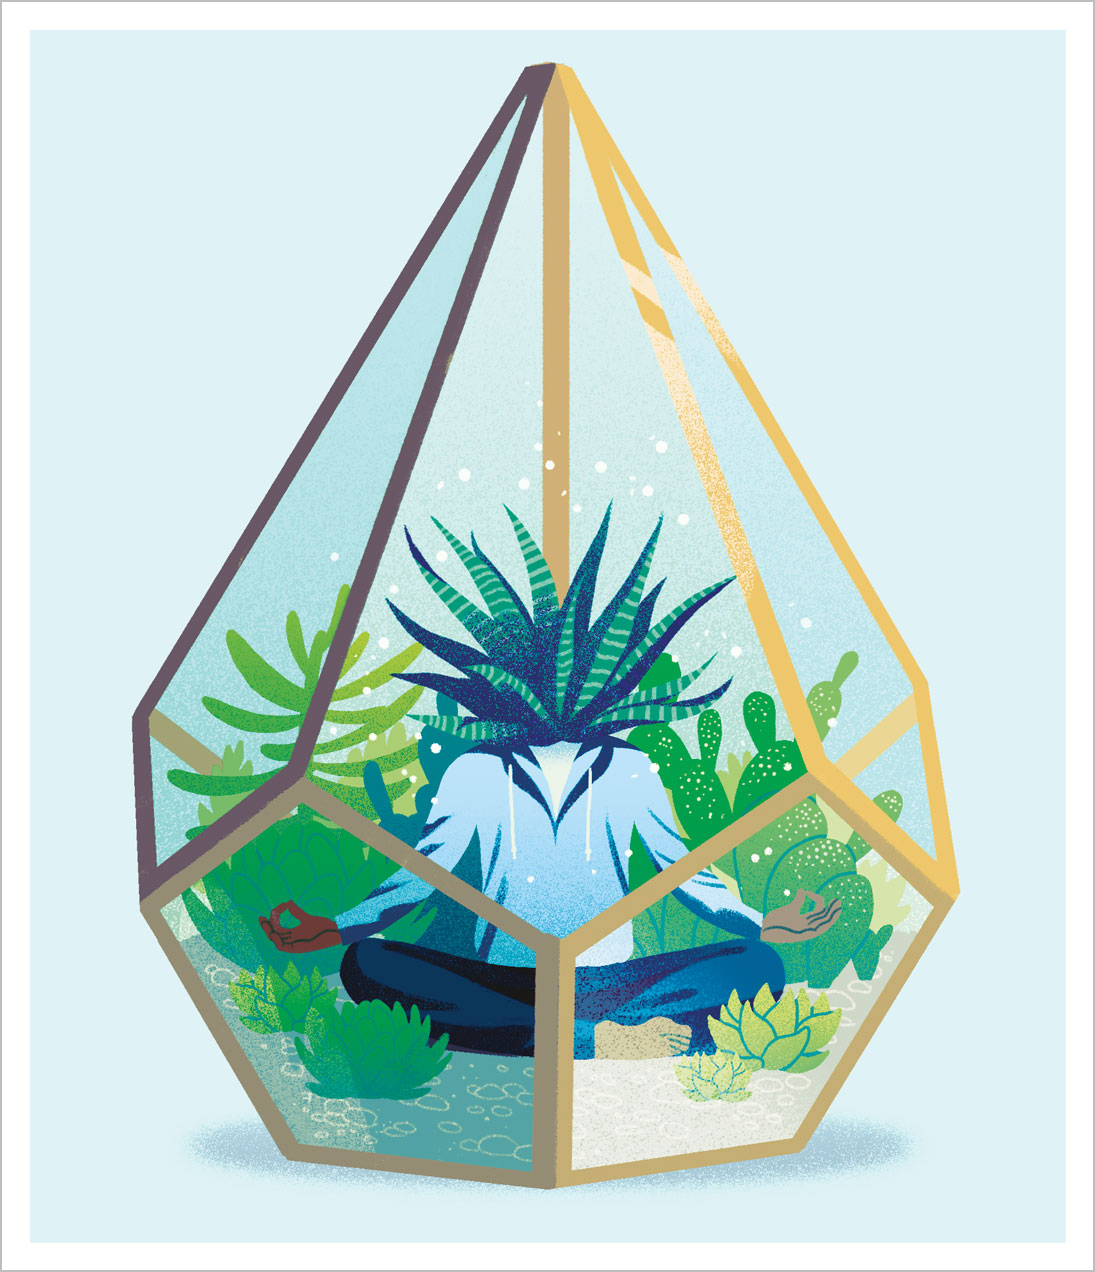 An illustration of a plant-headed person meditating in a lush succulent case.